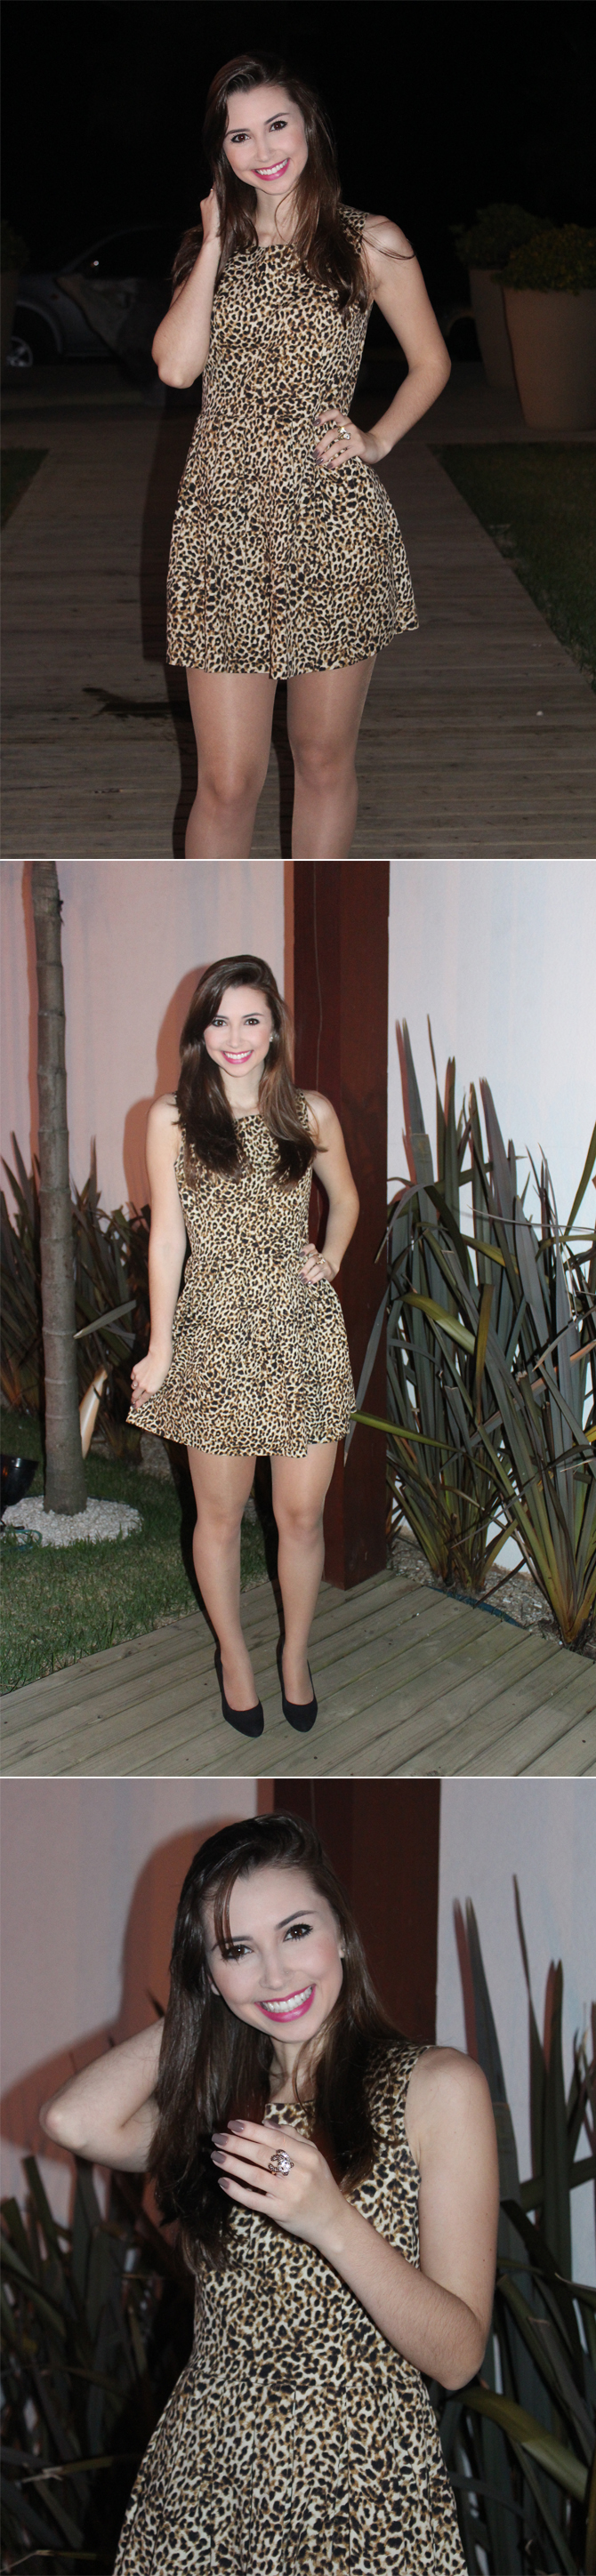 look balneário fashion show 2013 copy